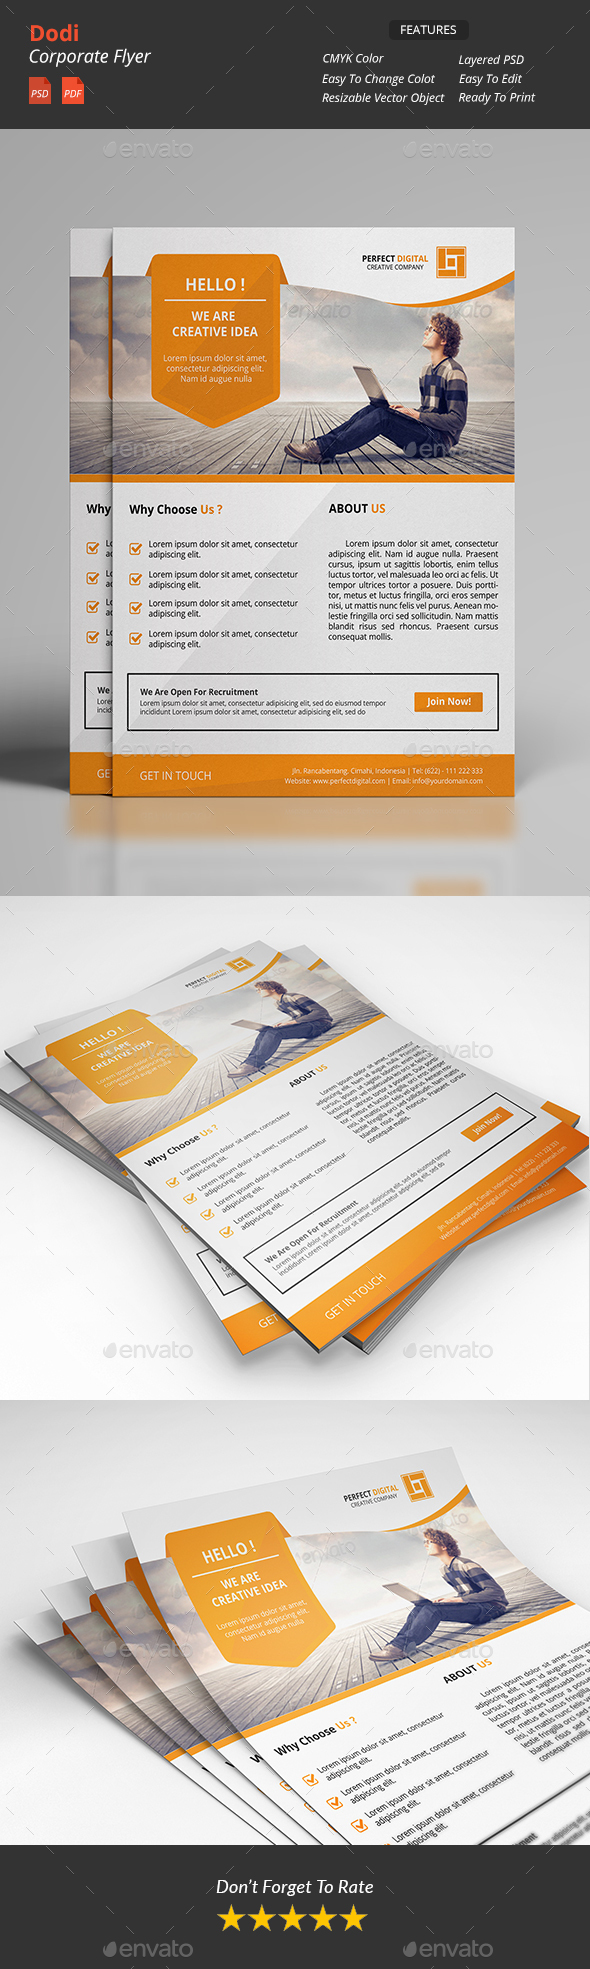 Dodi - Clean Corporate Flyers v2 - Corporate Flyers